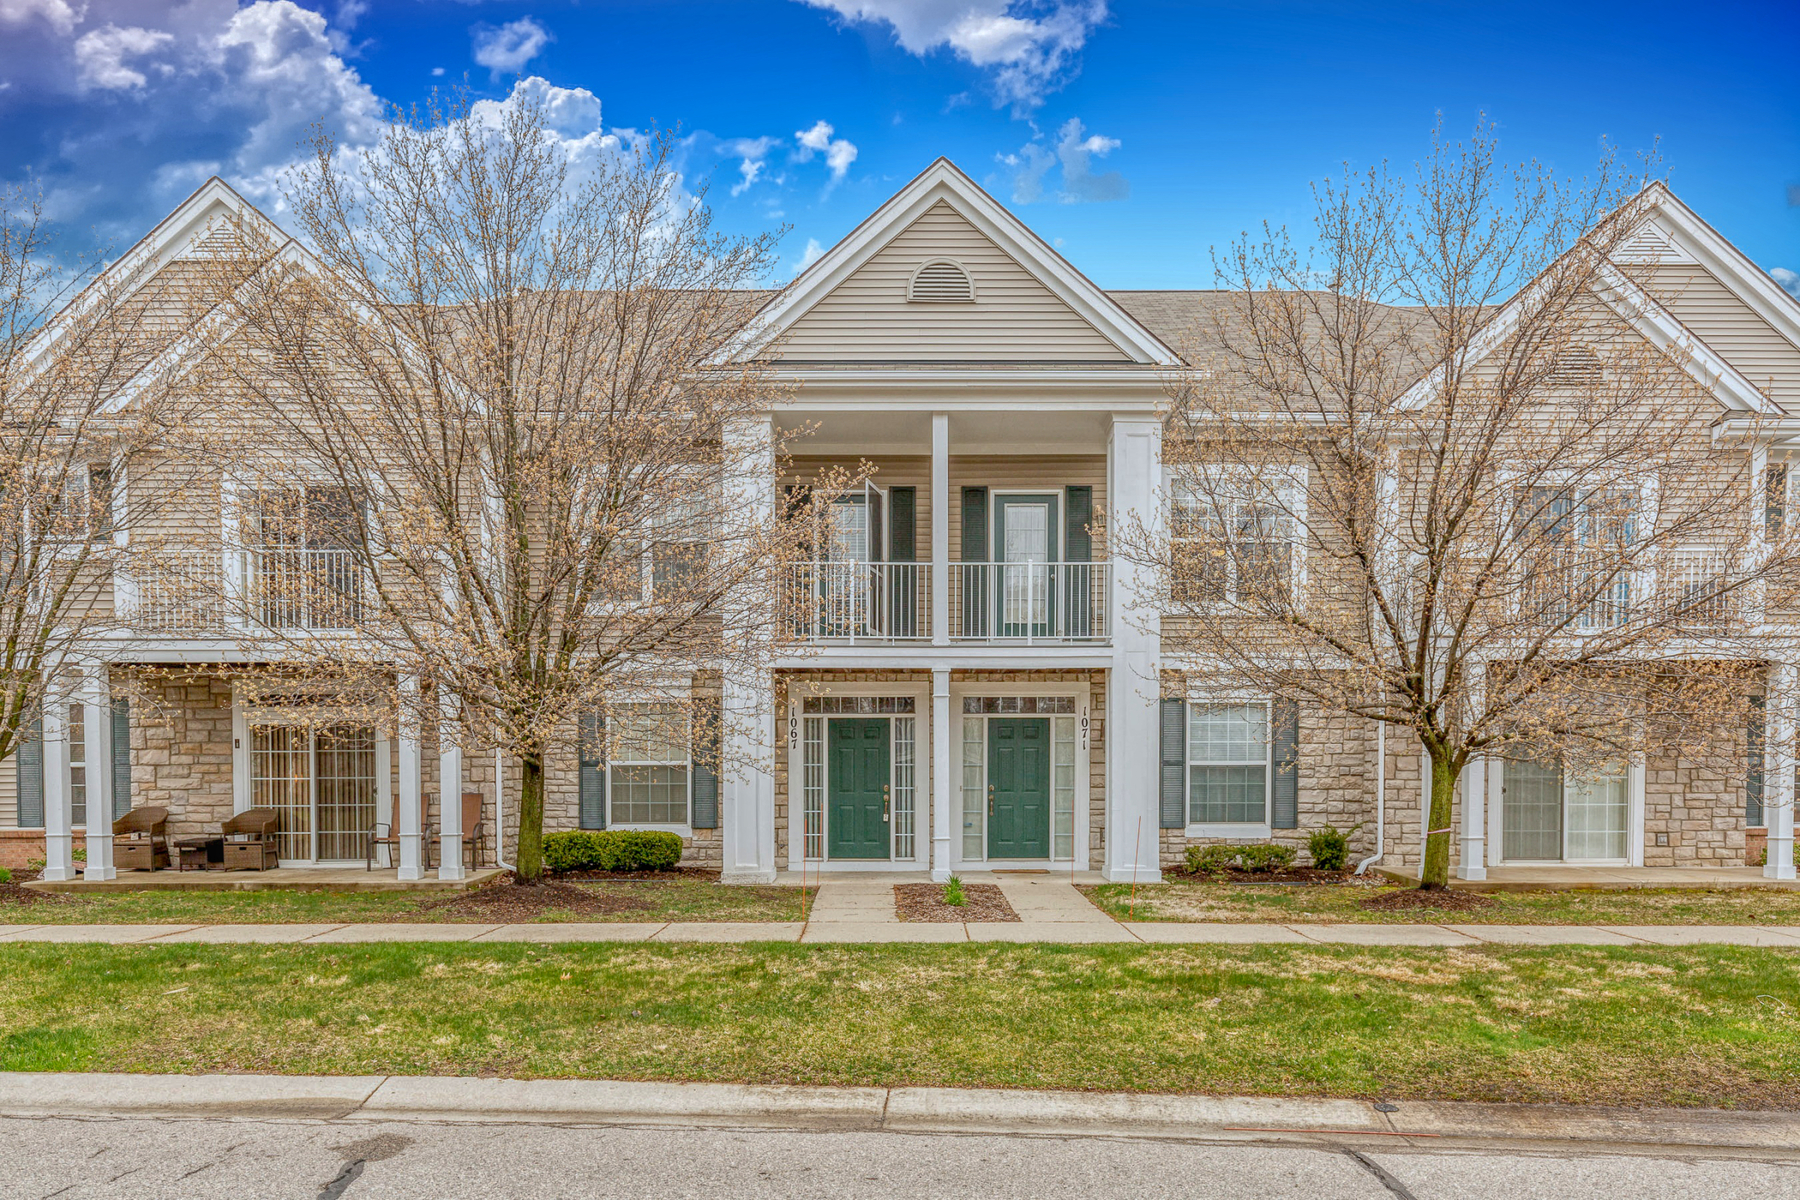 Condominiums for Sale at Troy 1067 Alameda Blvd, Troy, Michigan 48085 United States